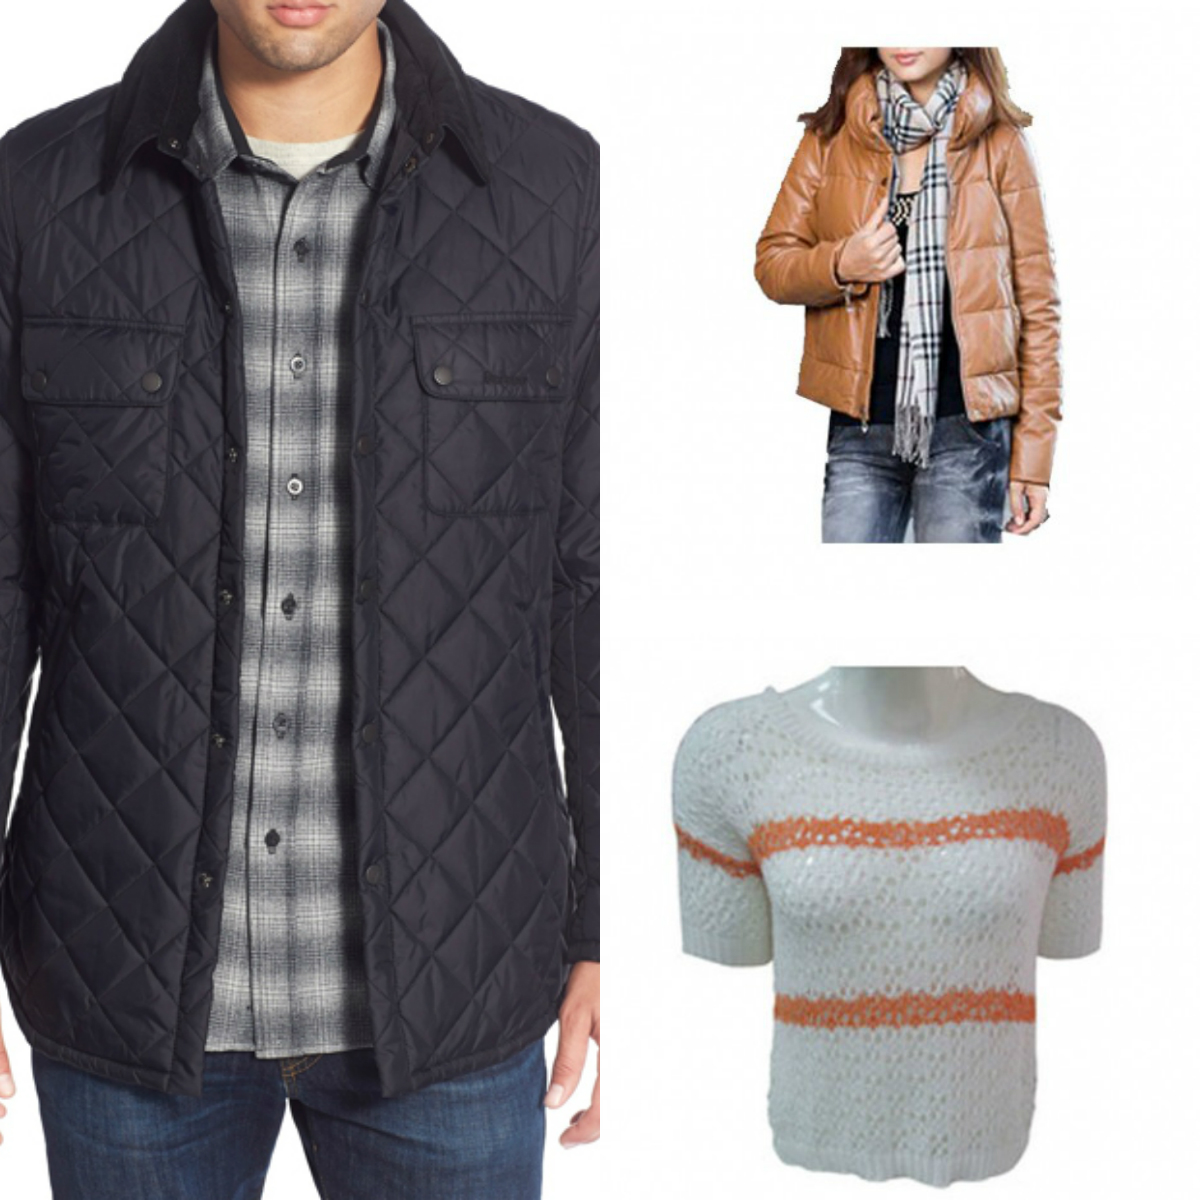 5 Ways To Dress Better For The Colder Months